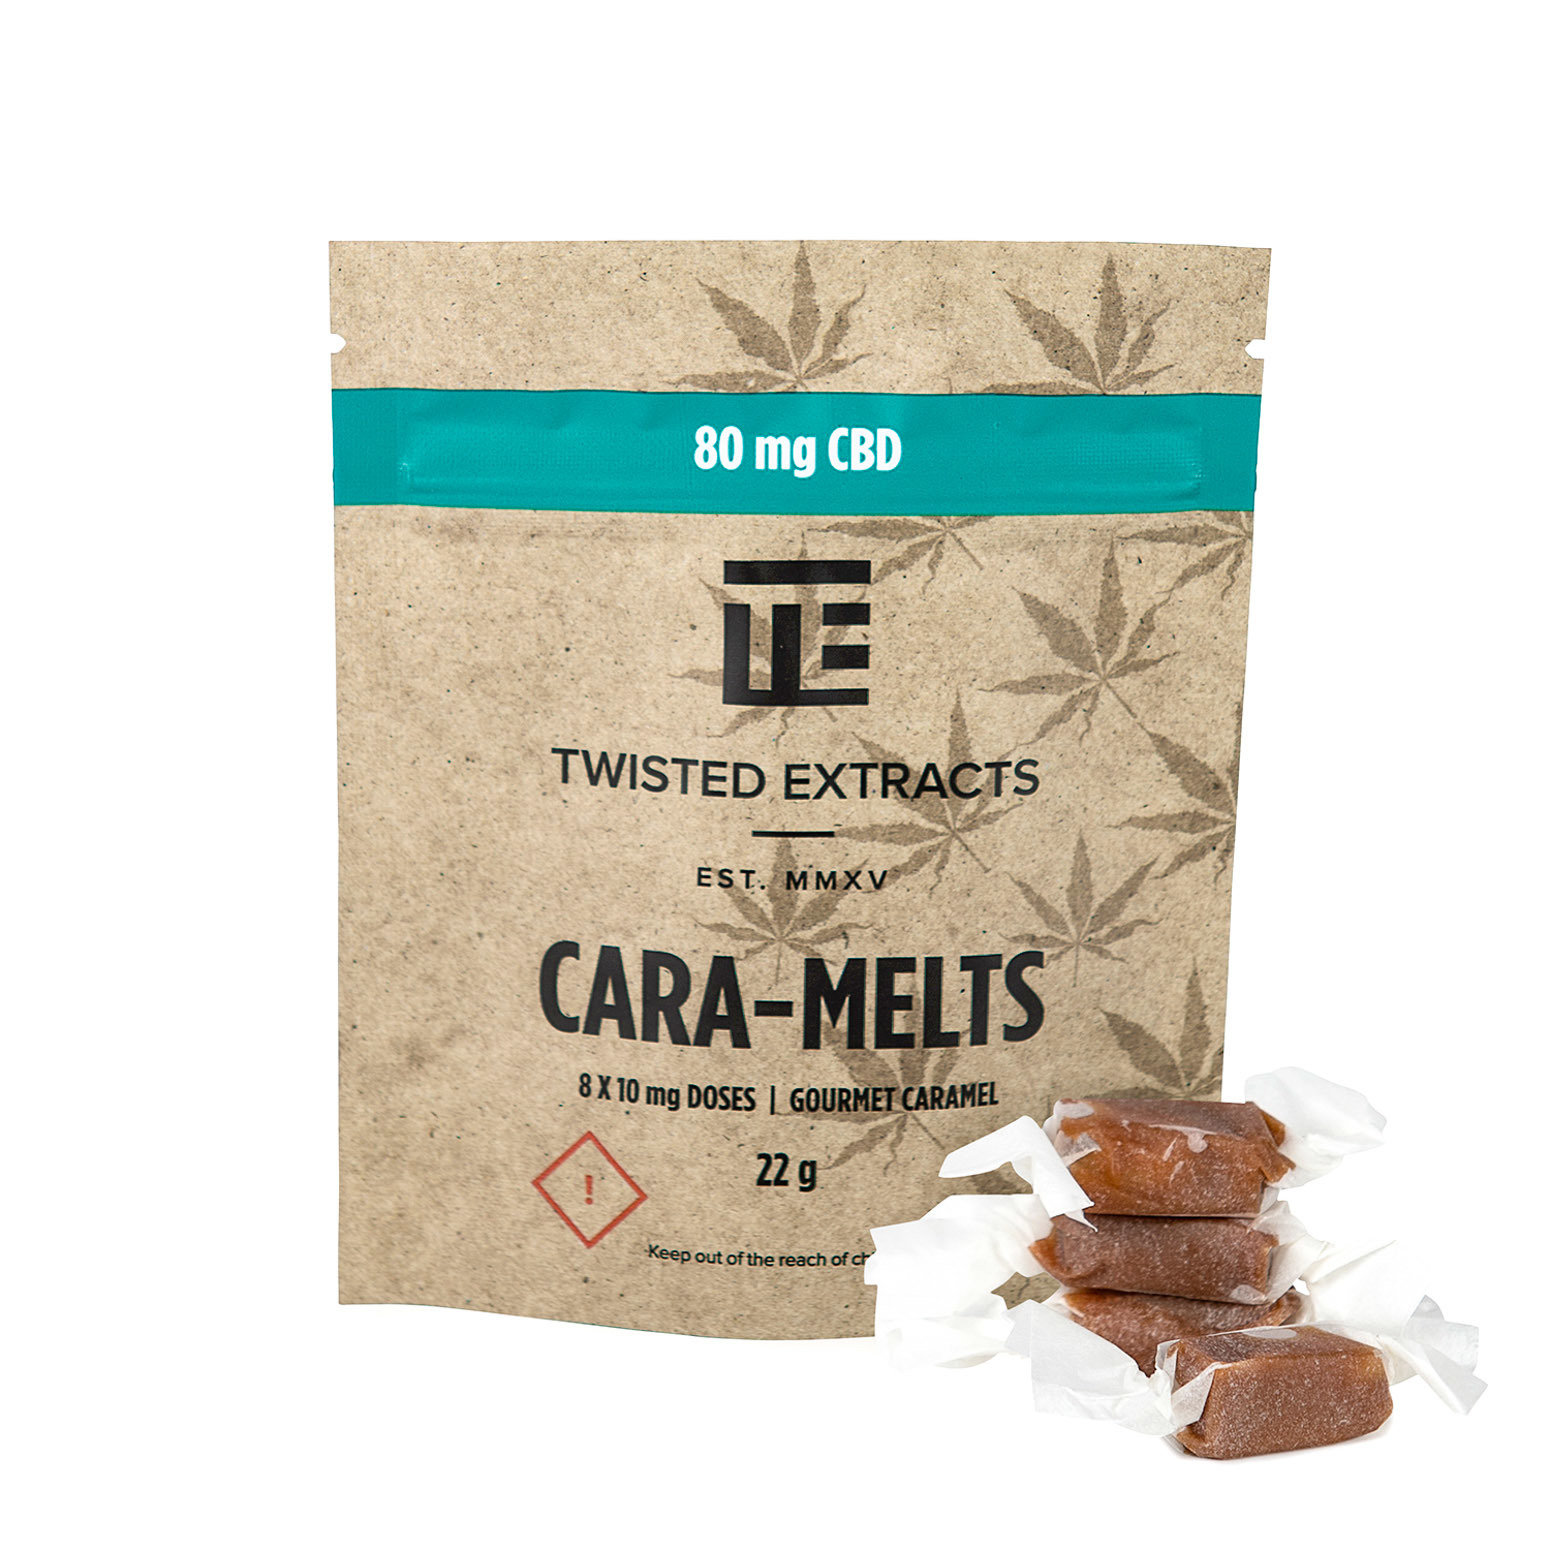 Cara-Melts CBD (80mg) by Twisted Extracts 00068